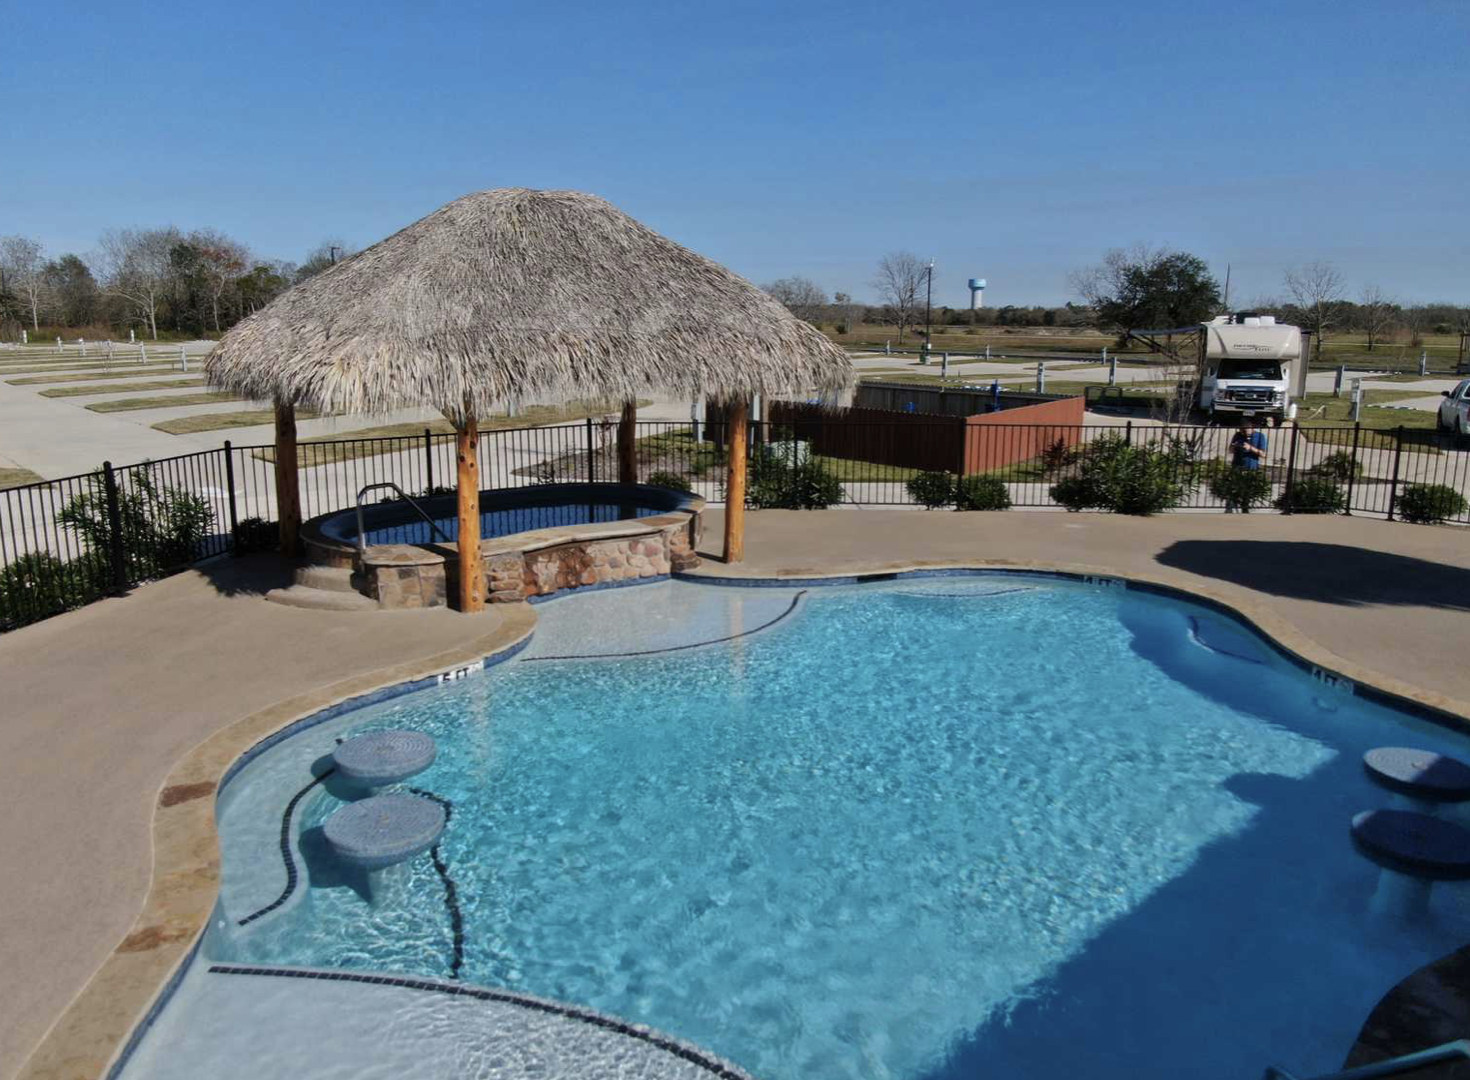 Summer Breeze campground near Houston, TX with pool and covered hot tub.